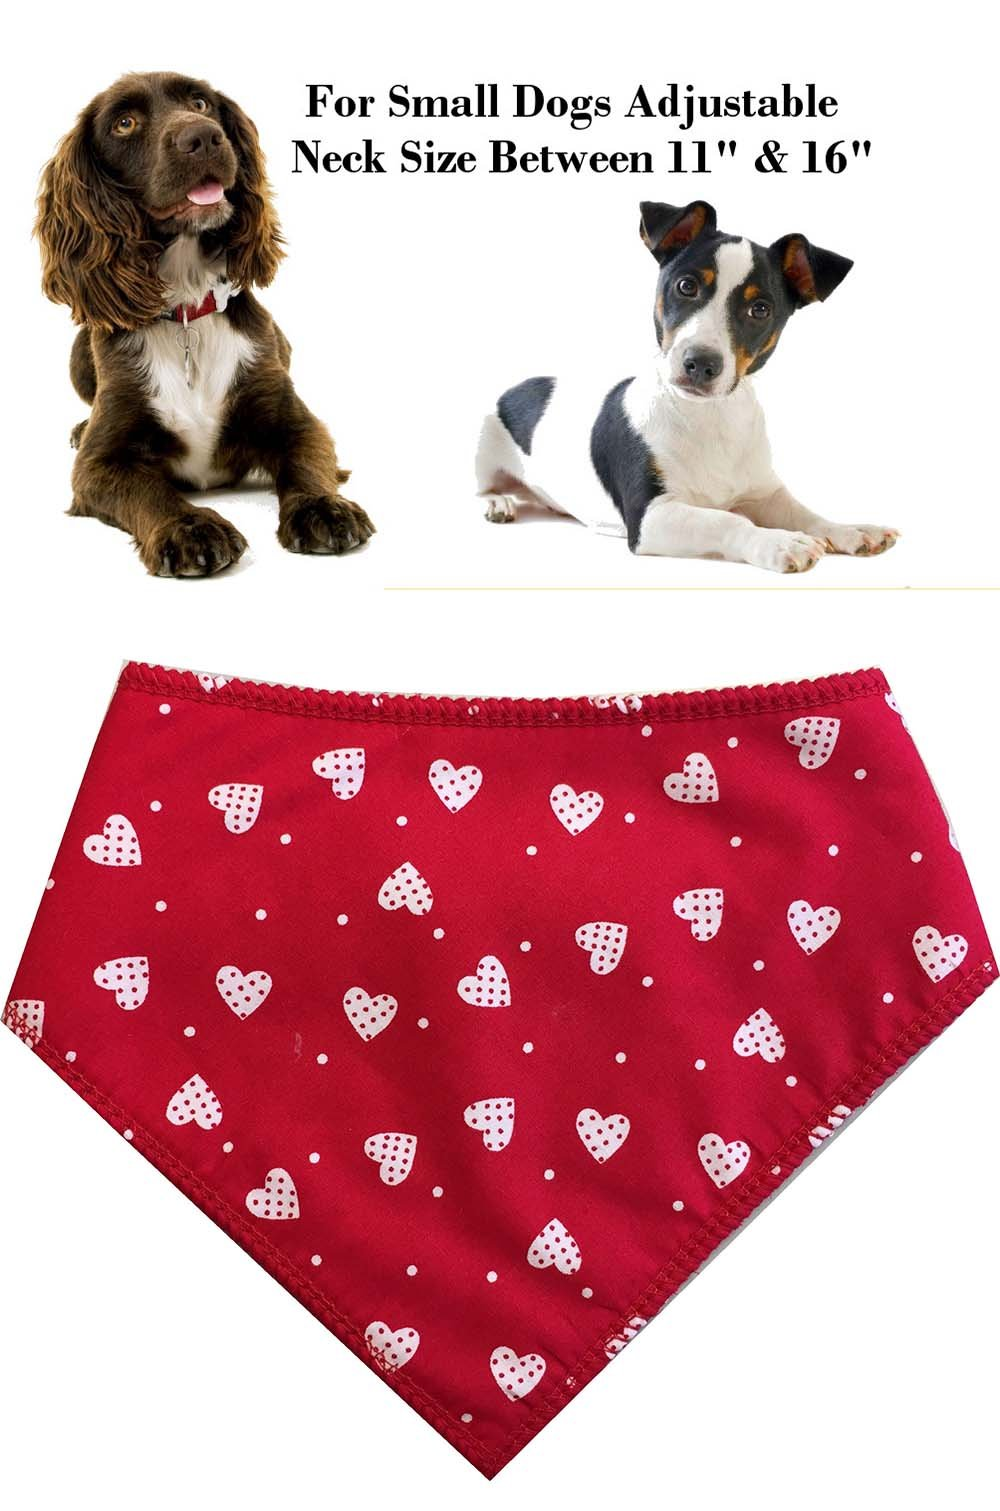 Spoilt Rotten Pets (S2) Branded Red & White Hearts, Adjustable Neck to Fit Small To Medium Dogs – Neck Size 11″ – 16″ Generally Fits Cocker Spaniel, Border Terrier, Jack Russell, Westies and Shih Tzu Sized Dogs. by Spoilt Rotten Pets